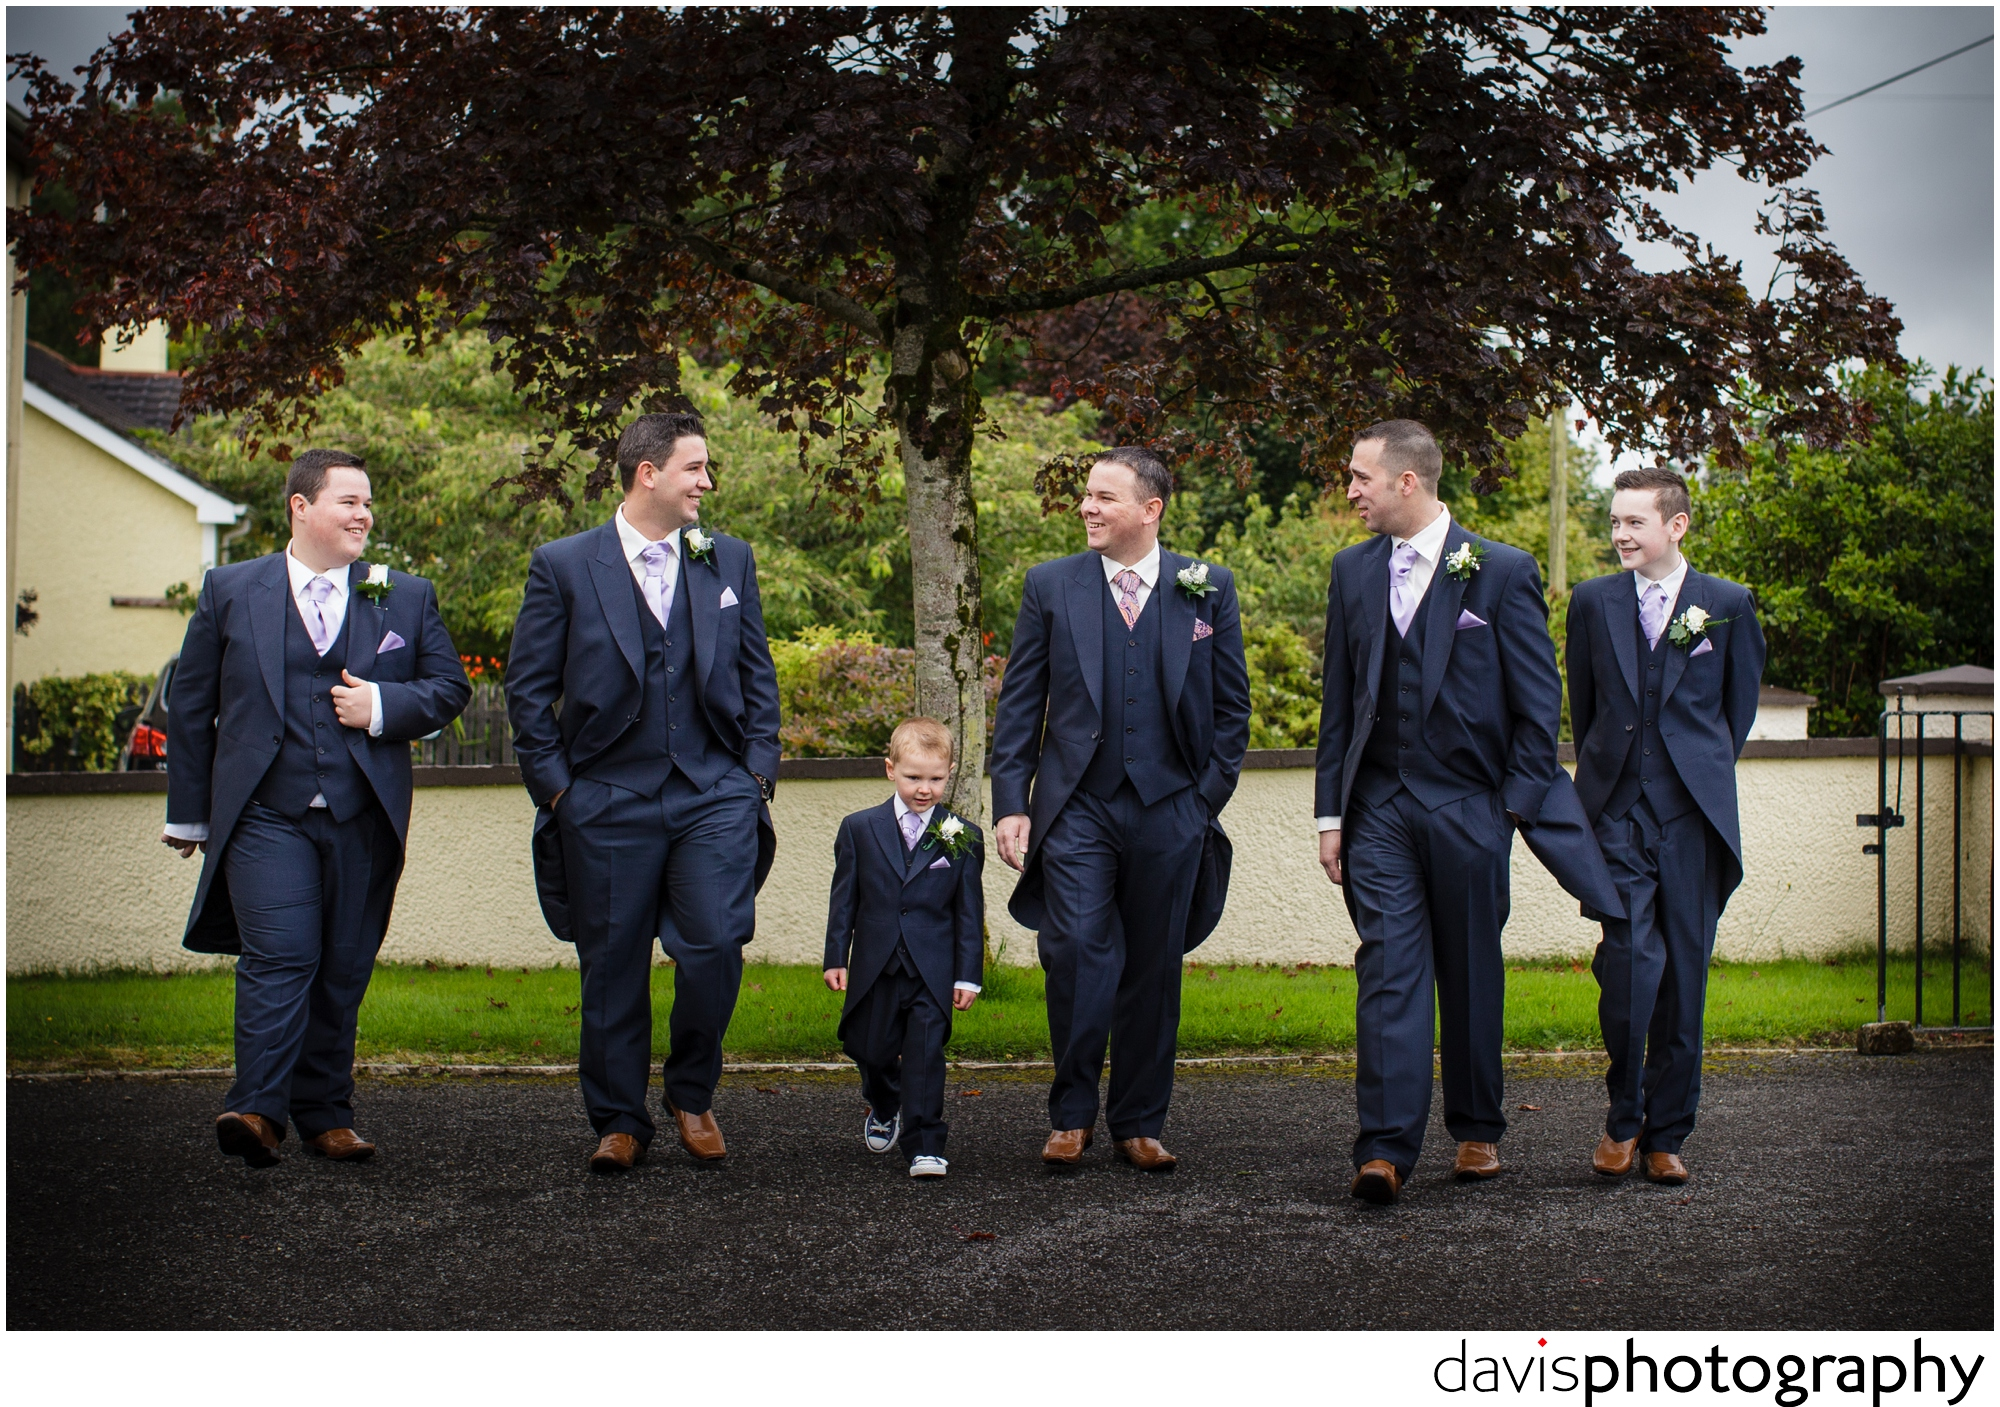 groom walks to church with his best man groomsman and pageboy